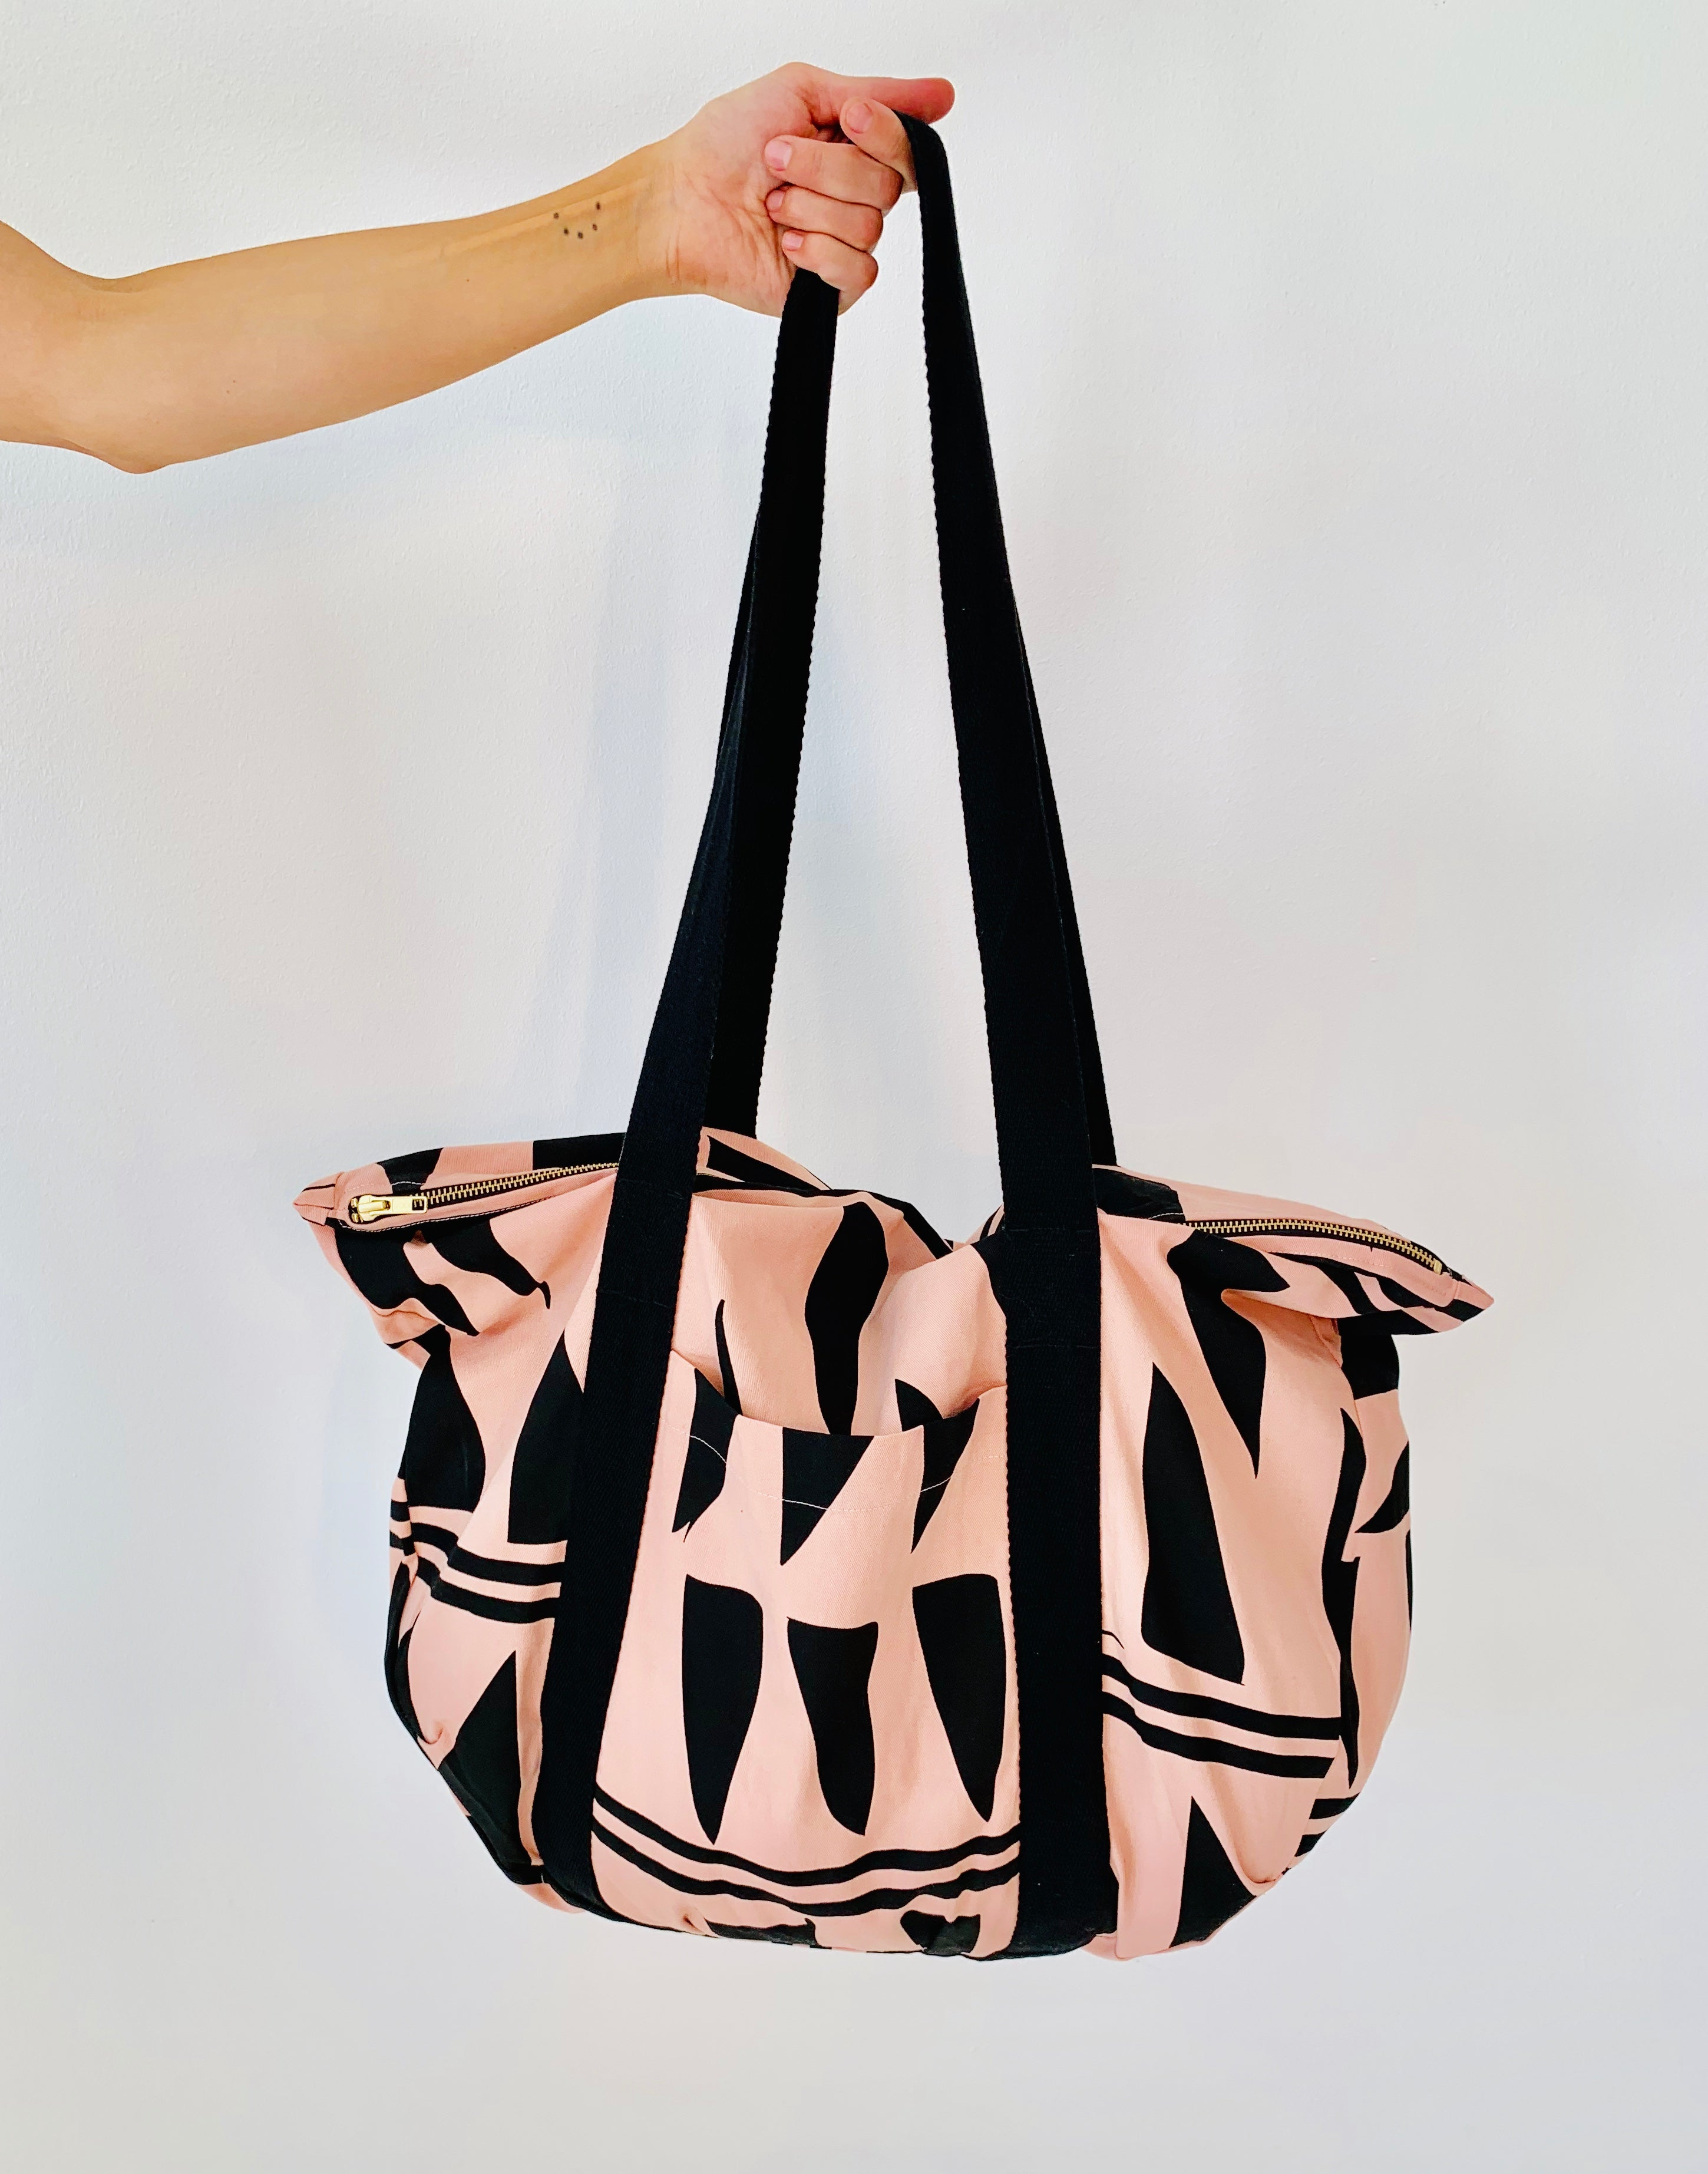 Zipper Bag rose